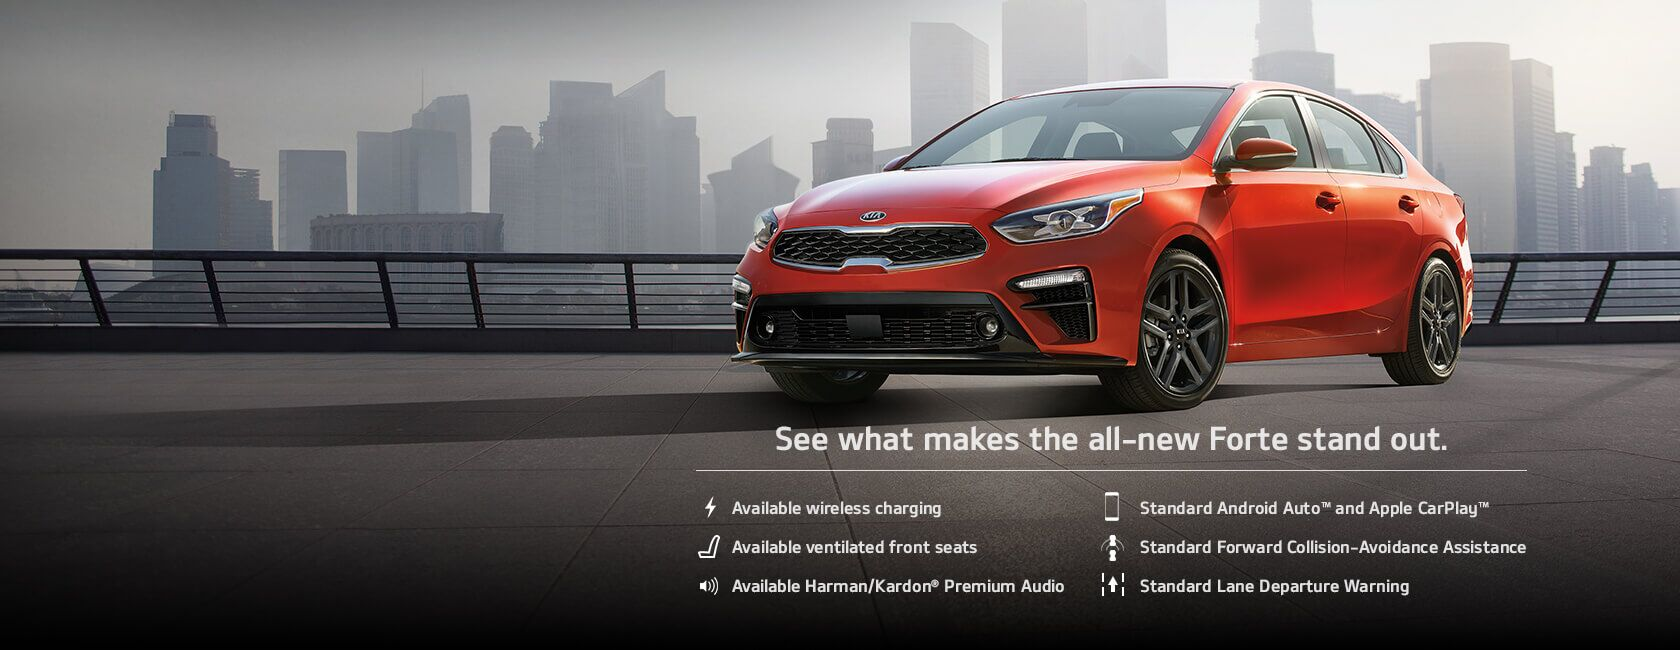 2019 Kia Forte in Saint Louis, MO